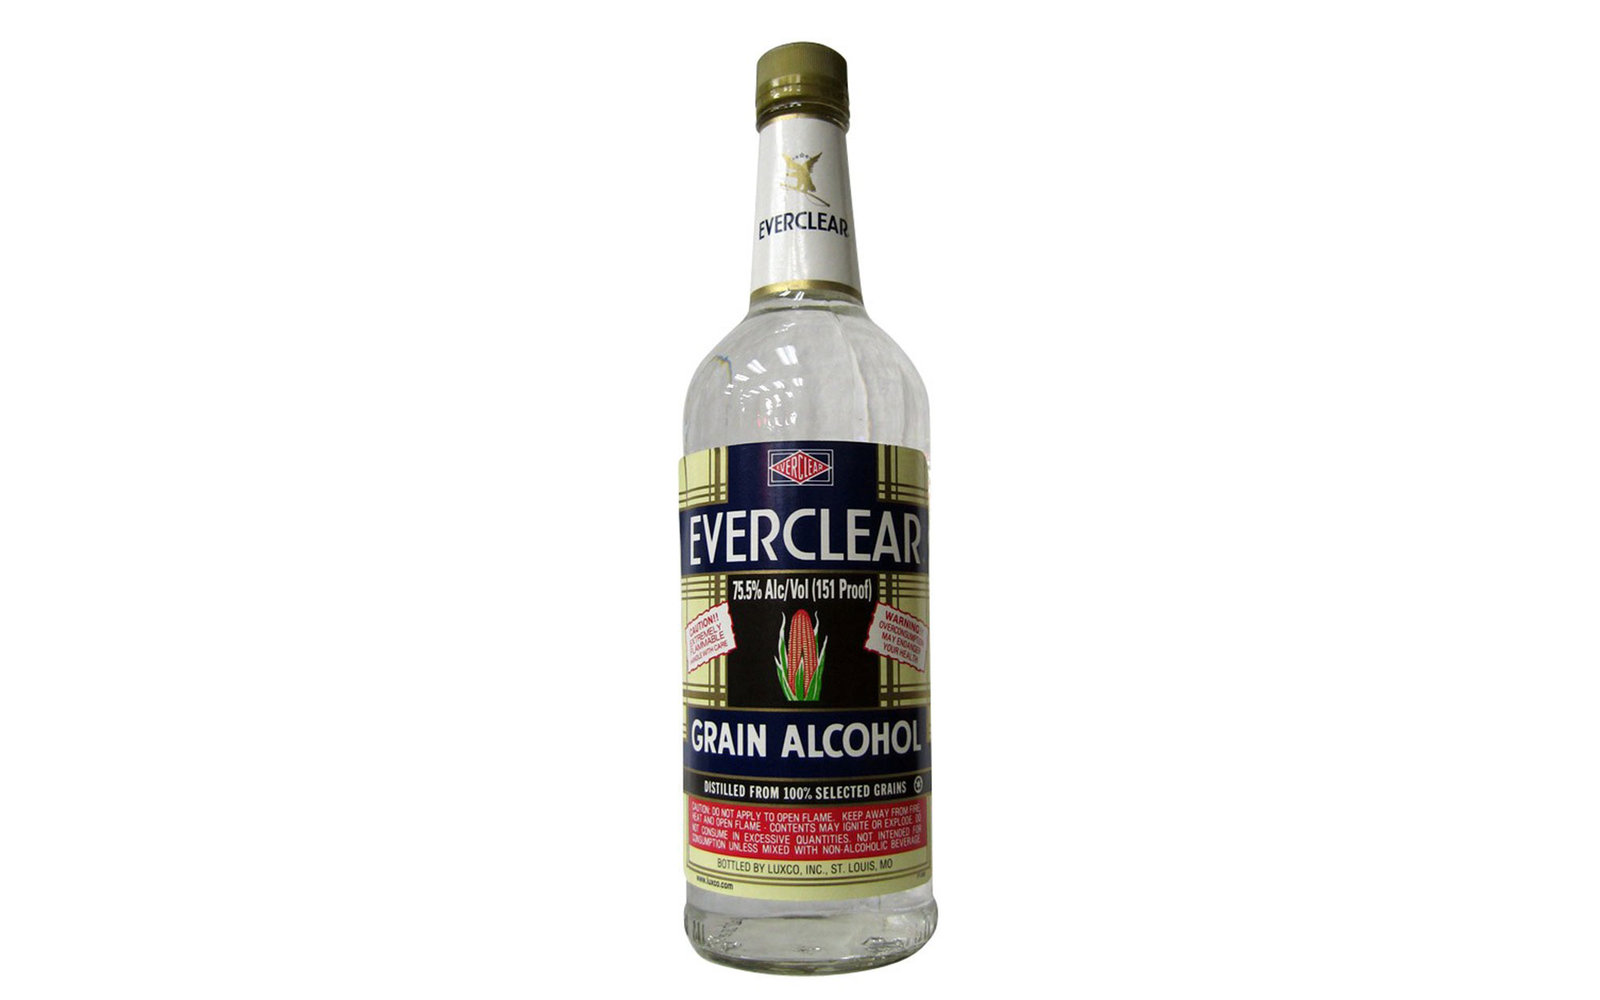 Everclear grain alcohol brands